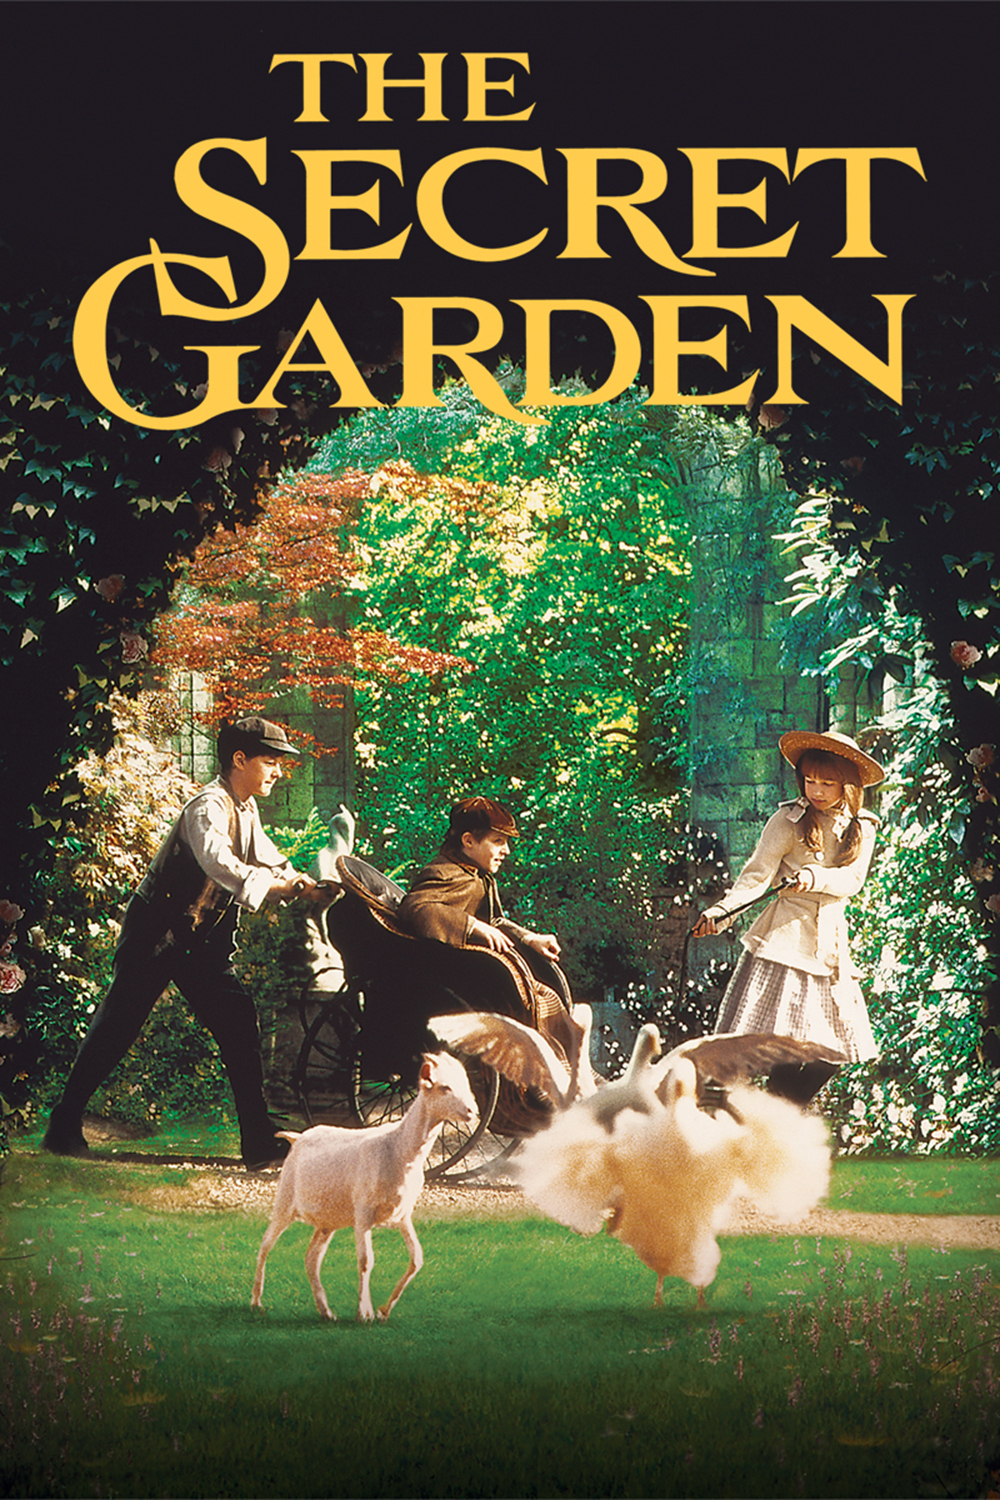 the secret garden 1993 imdb - The Secret Garden Summary